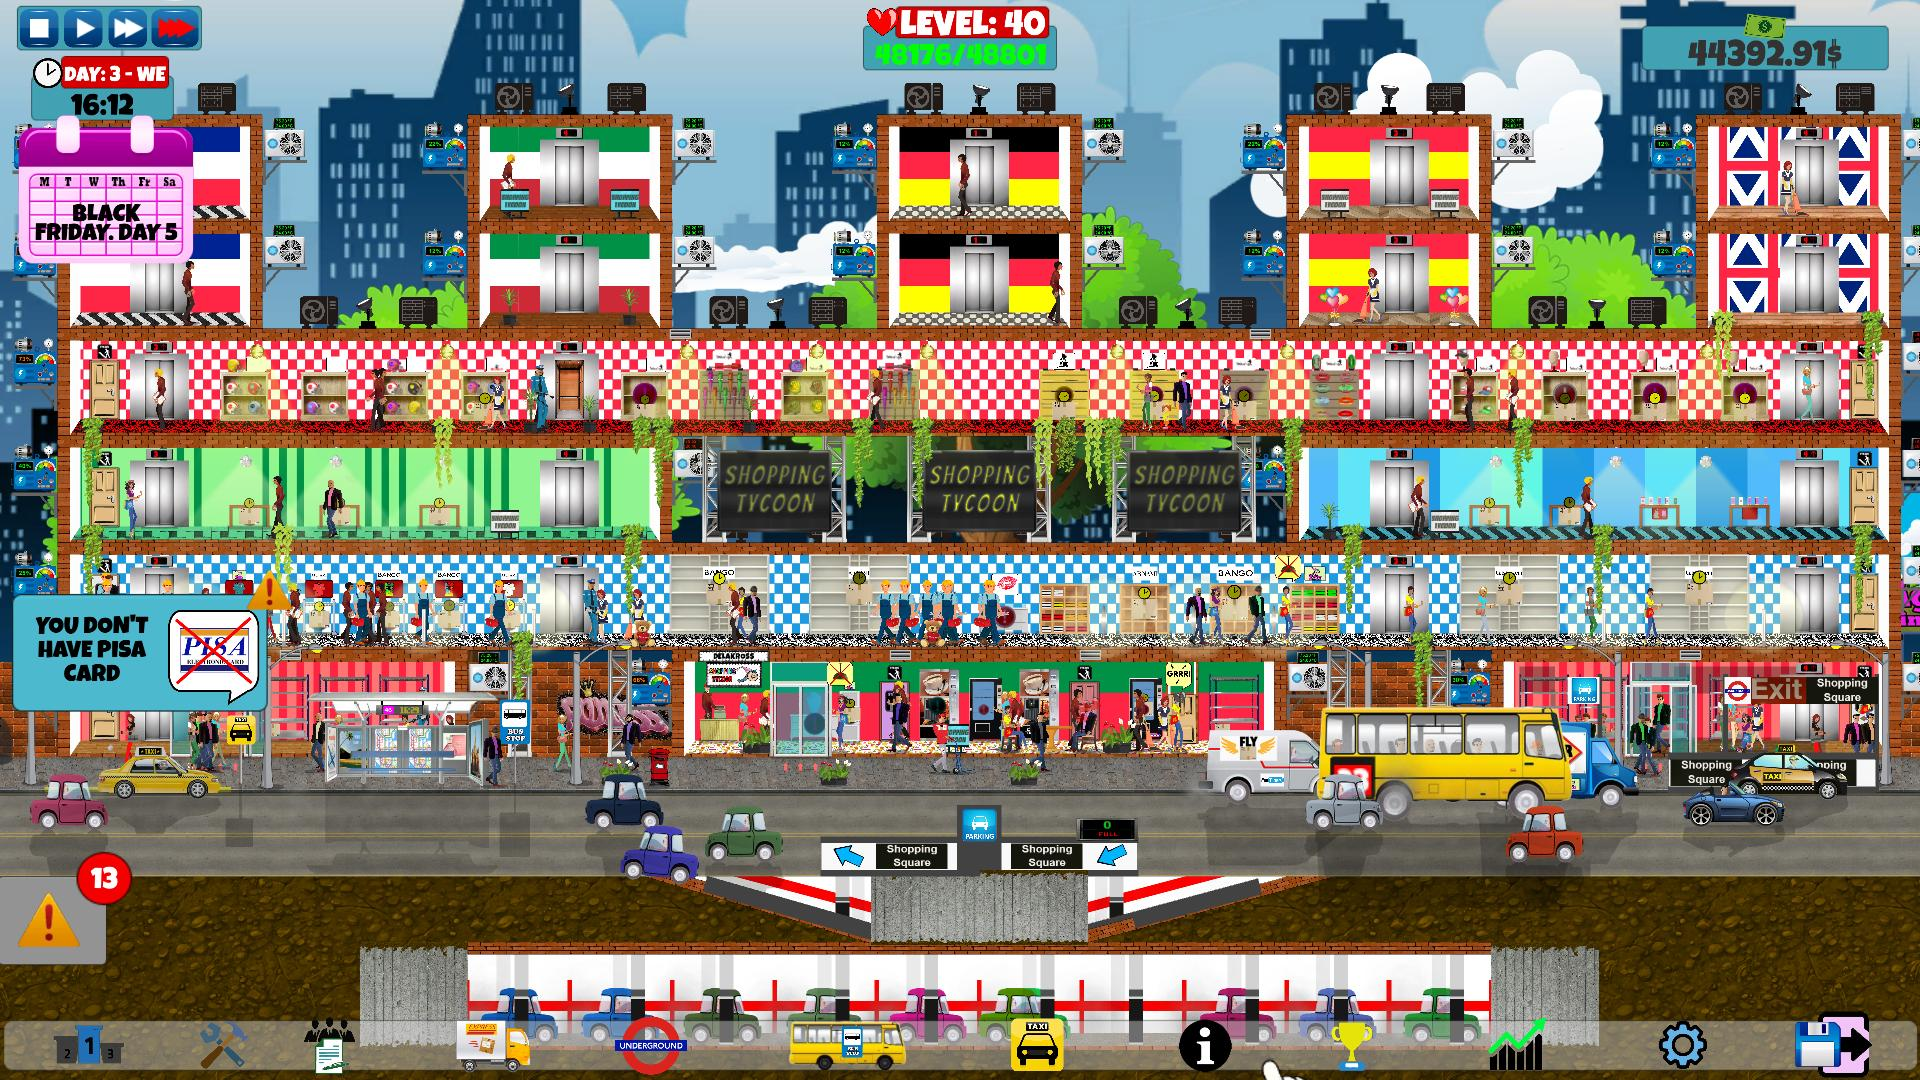 Shopping Tycoon Tai Game Download Game Chiến Thuật